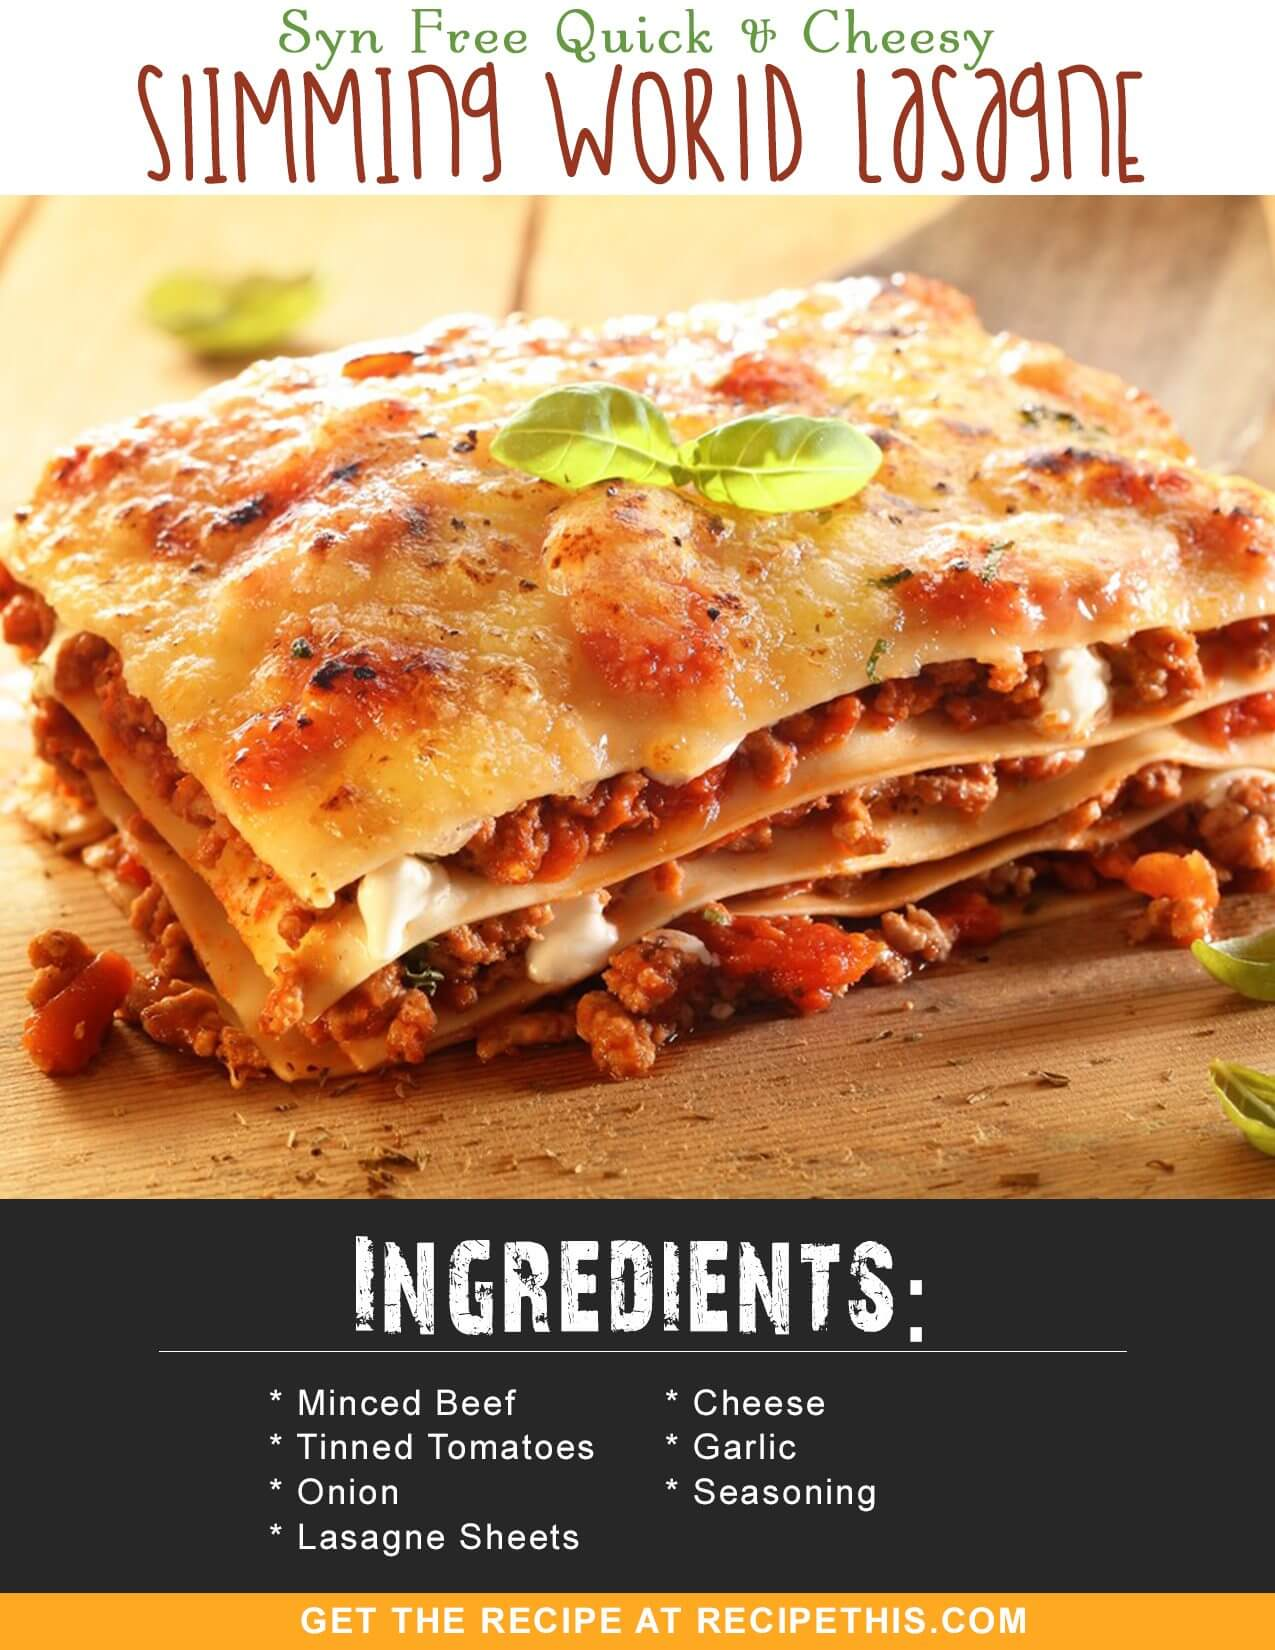 Slimming World Recipes | Syn Free Quick & Cheesy Slimming World Lasagne from RecipeThis.com